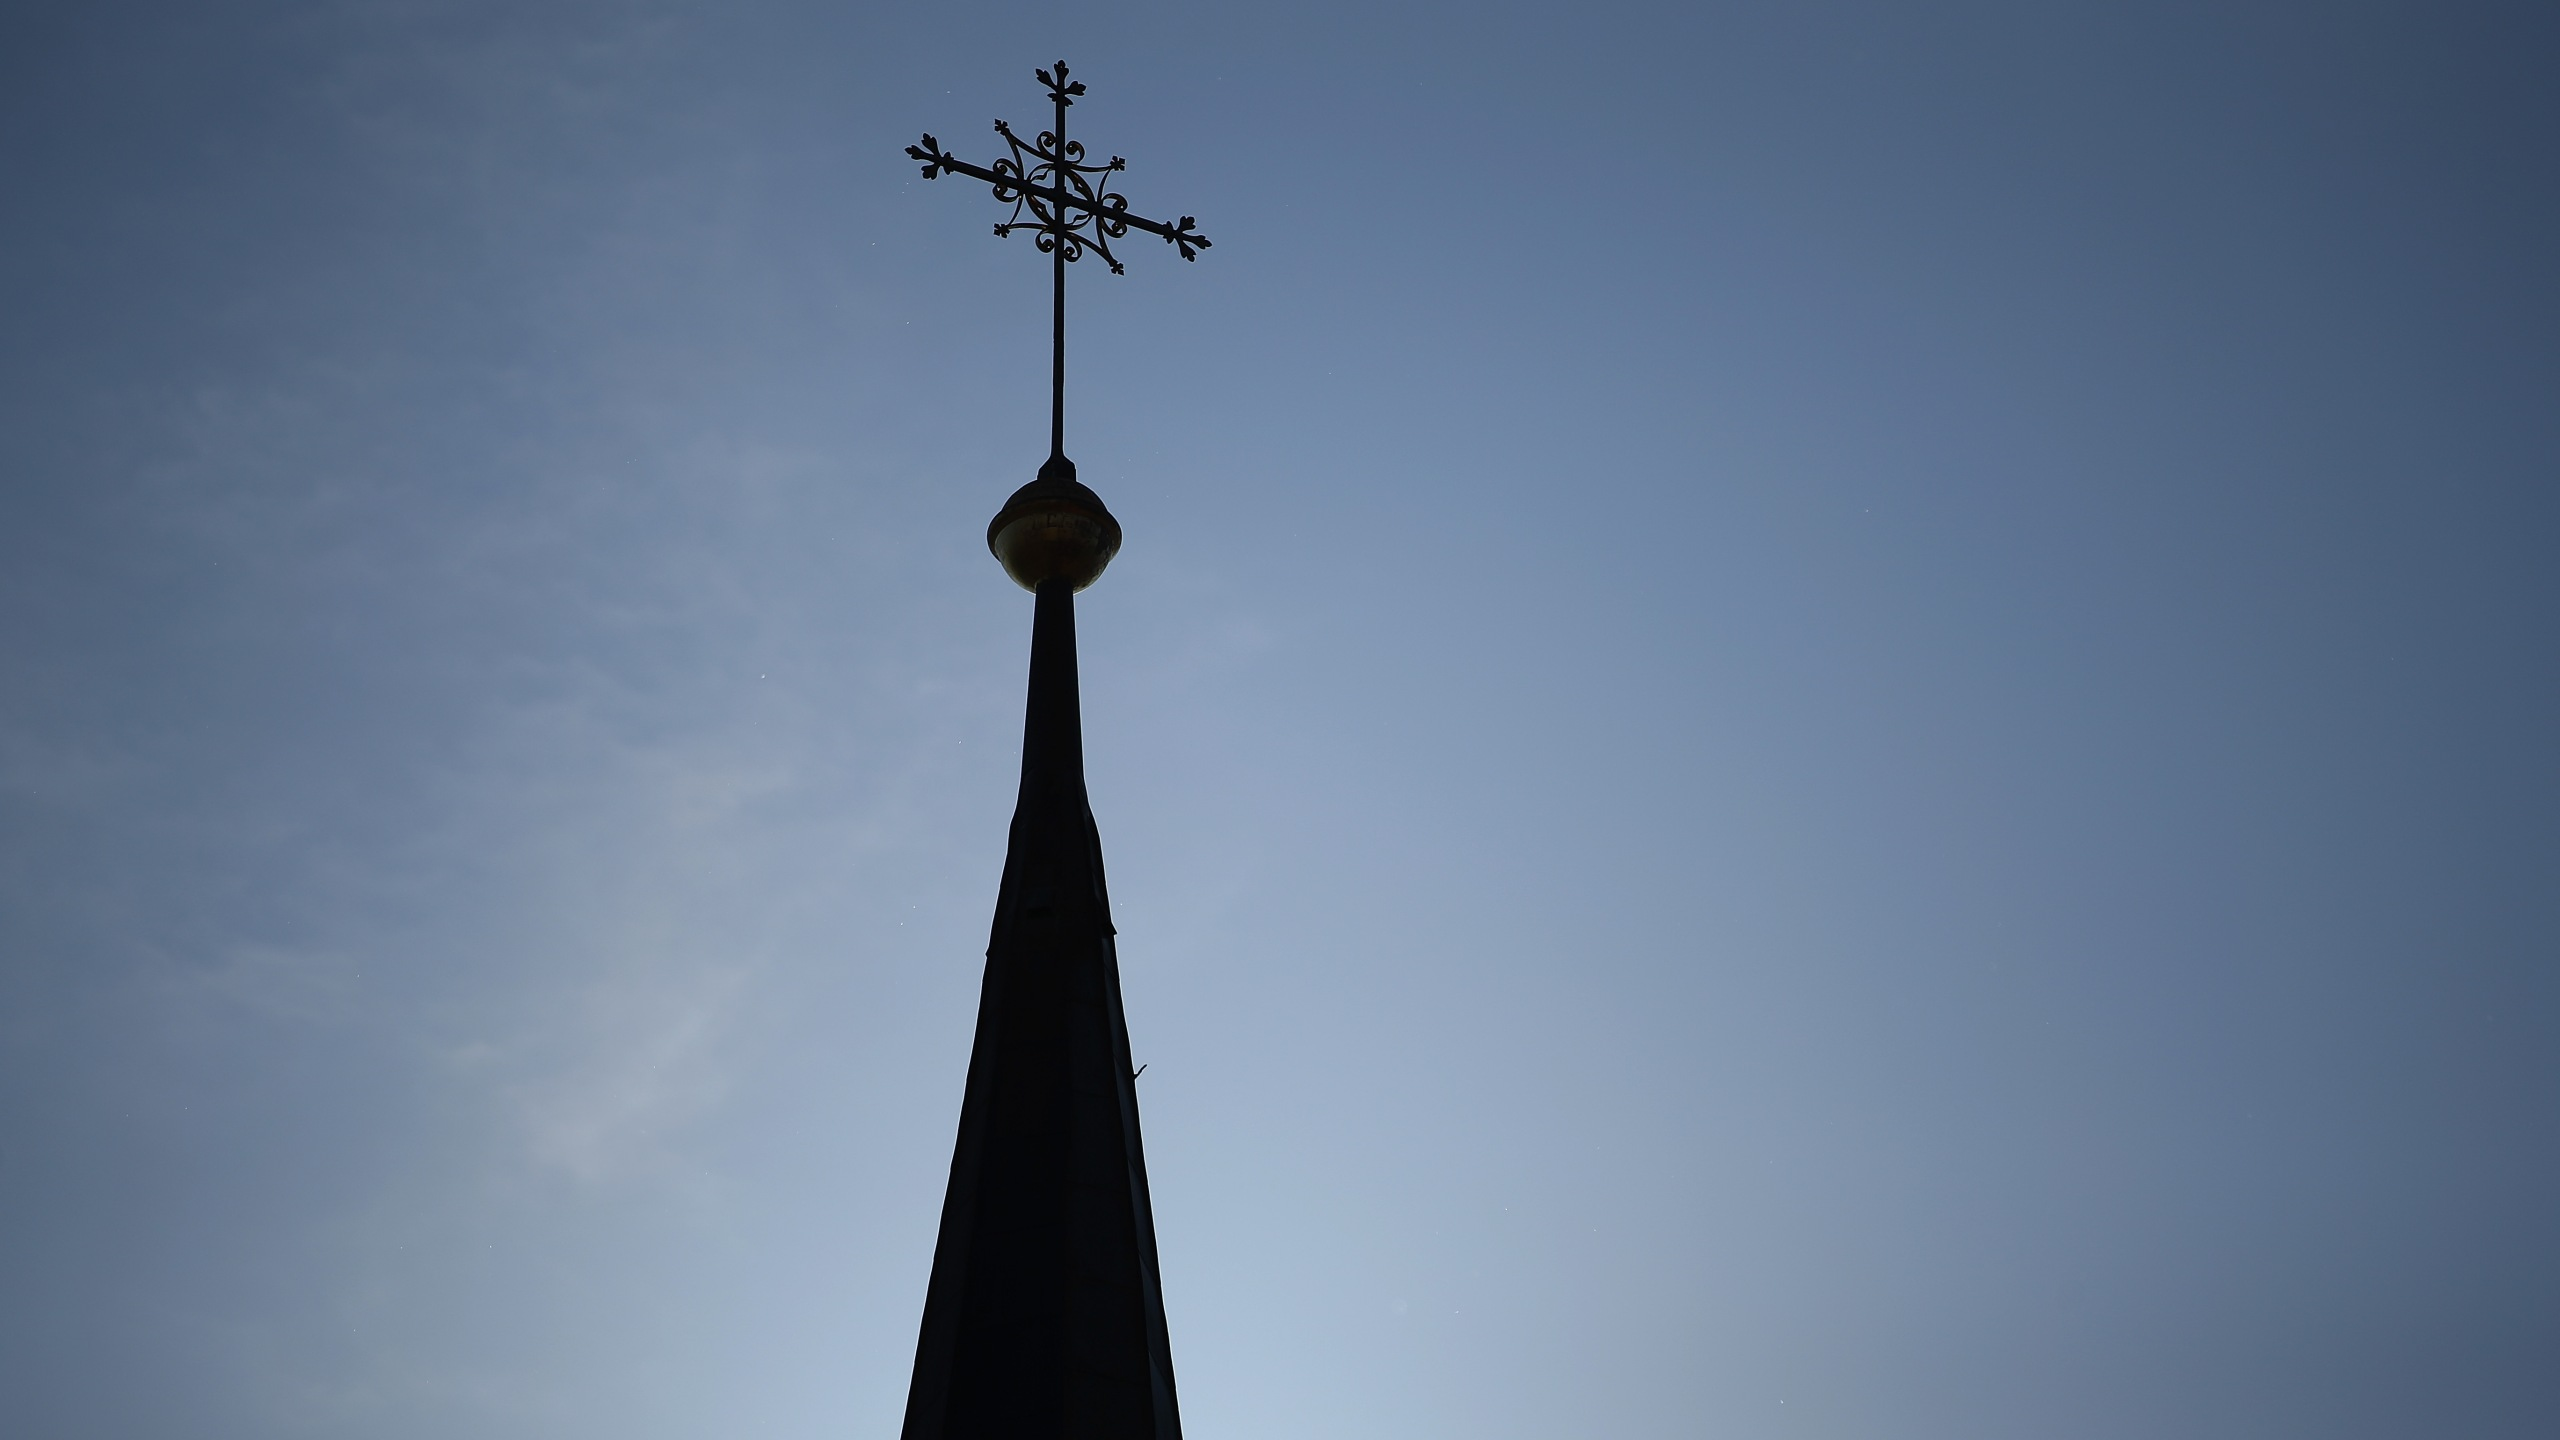 A cross stands on the spire of a Catholic church on Sept. 21, 2018 in Wallerdorf, Germany. (Credit: Sean Gallup/Getty Images)